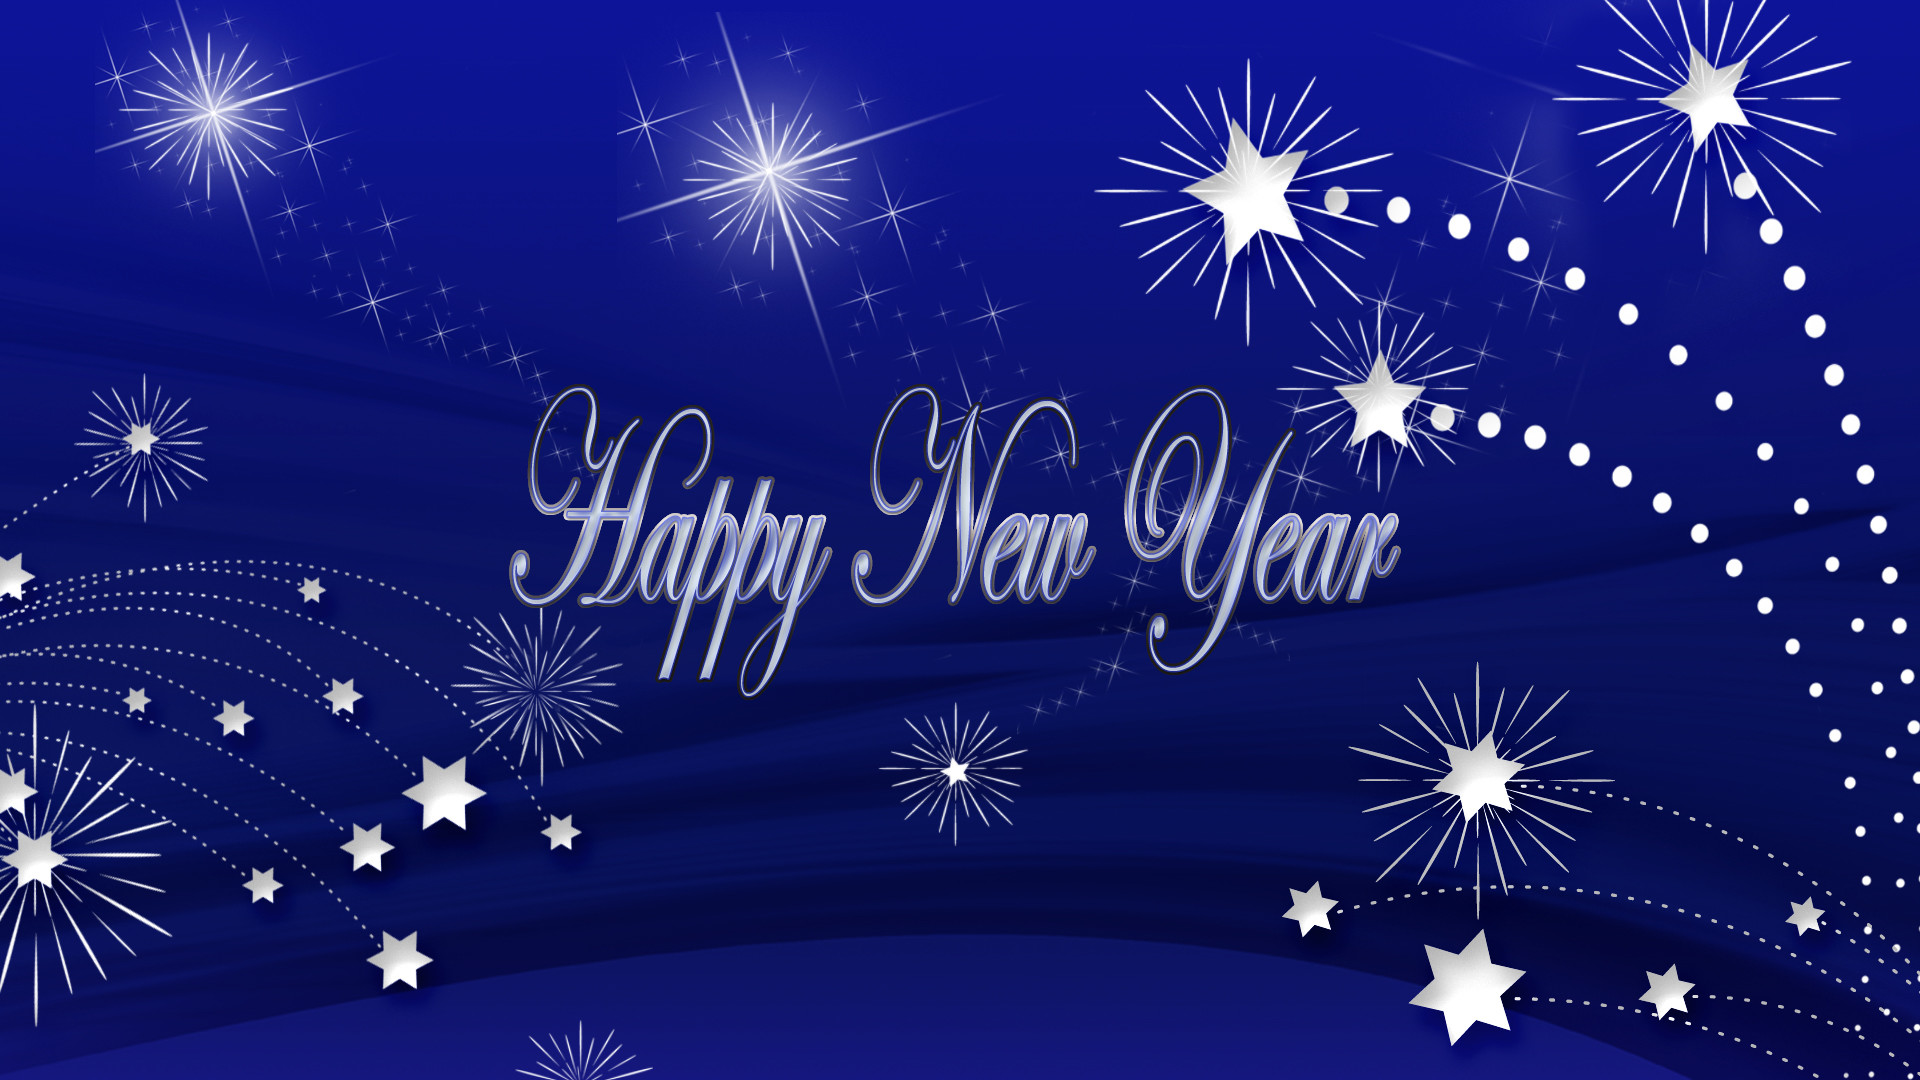 1920x1080 happy new year image background download wallpaper